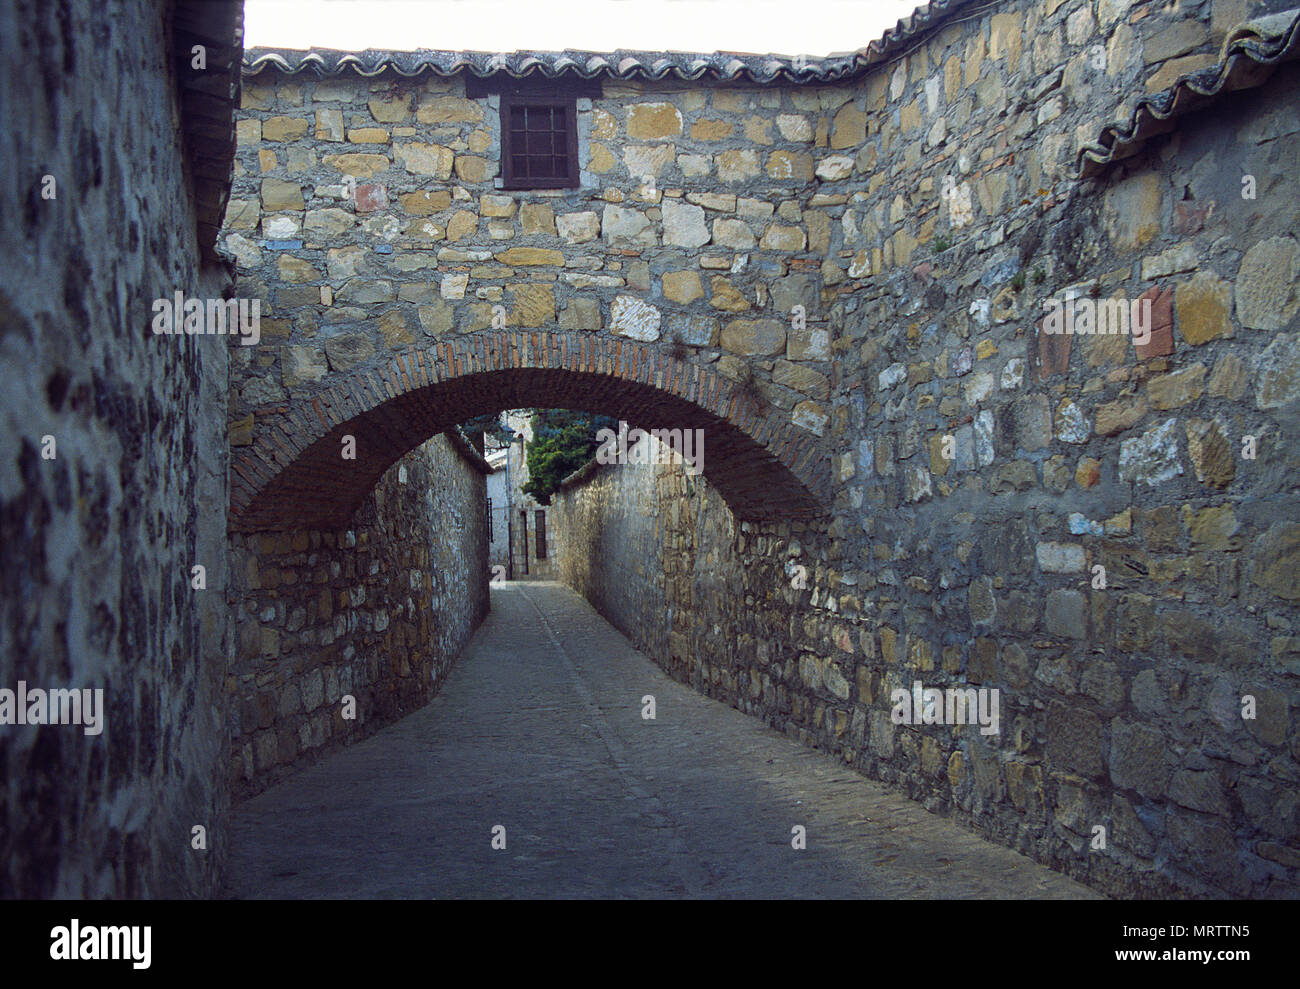 Street and arch. Baeza, Jaen province, Andalucia, Spain. Stock Photo